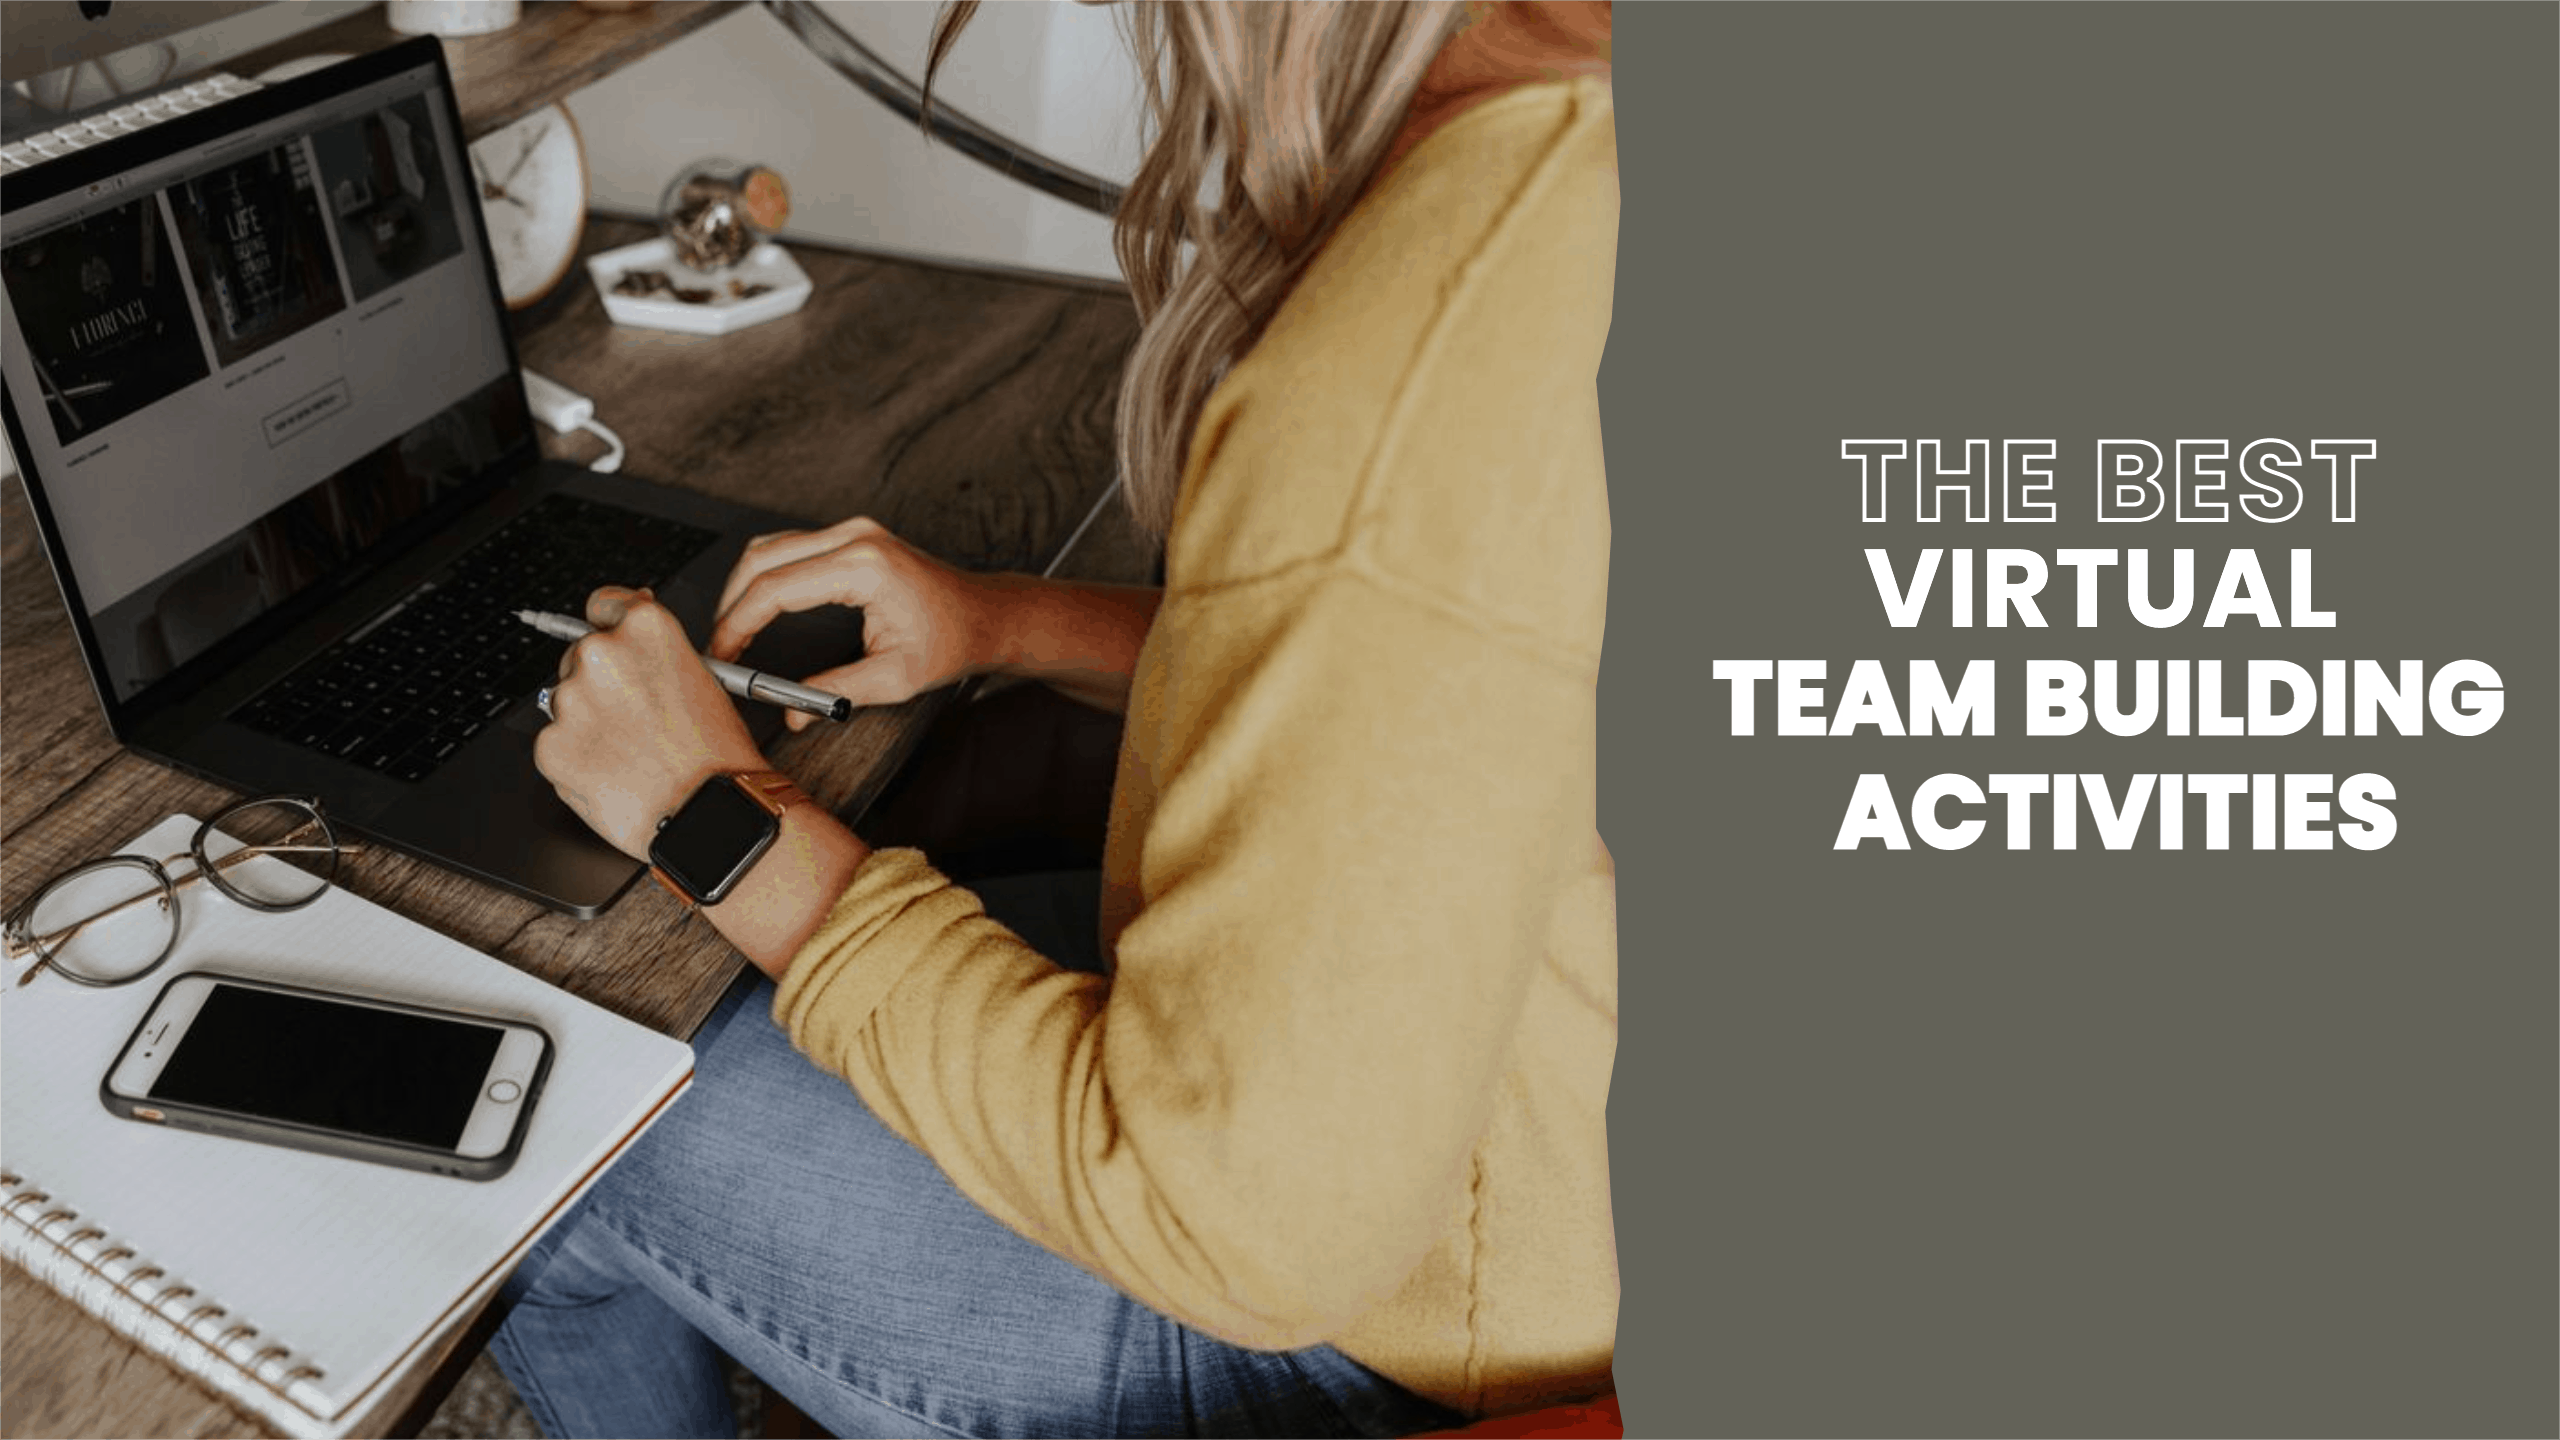 The Best Virtual Team Building Activities